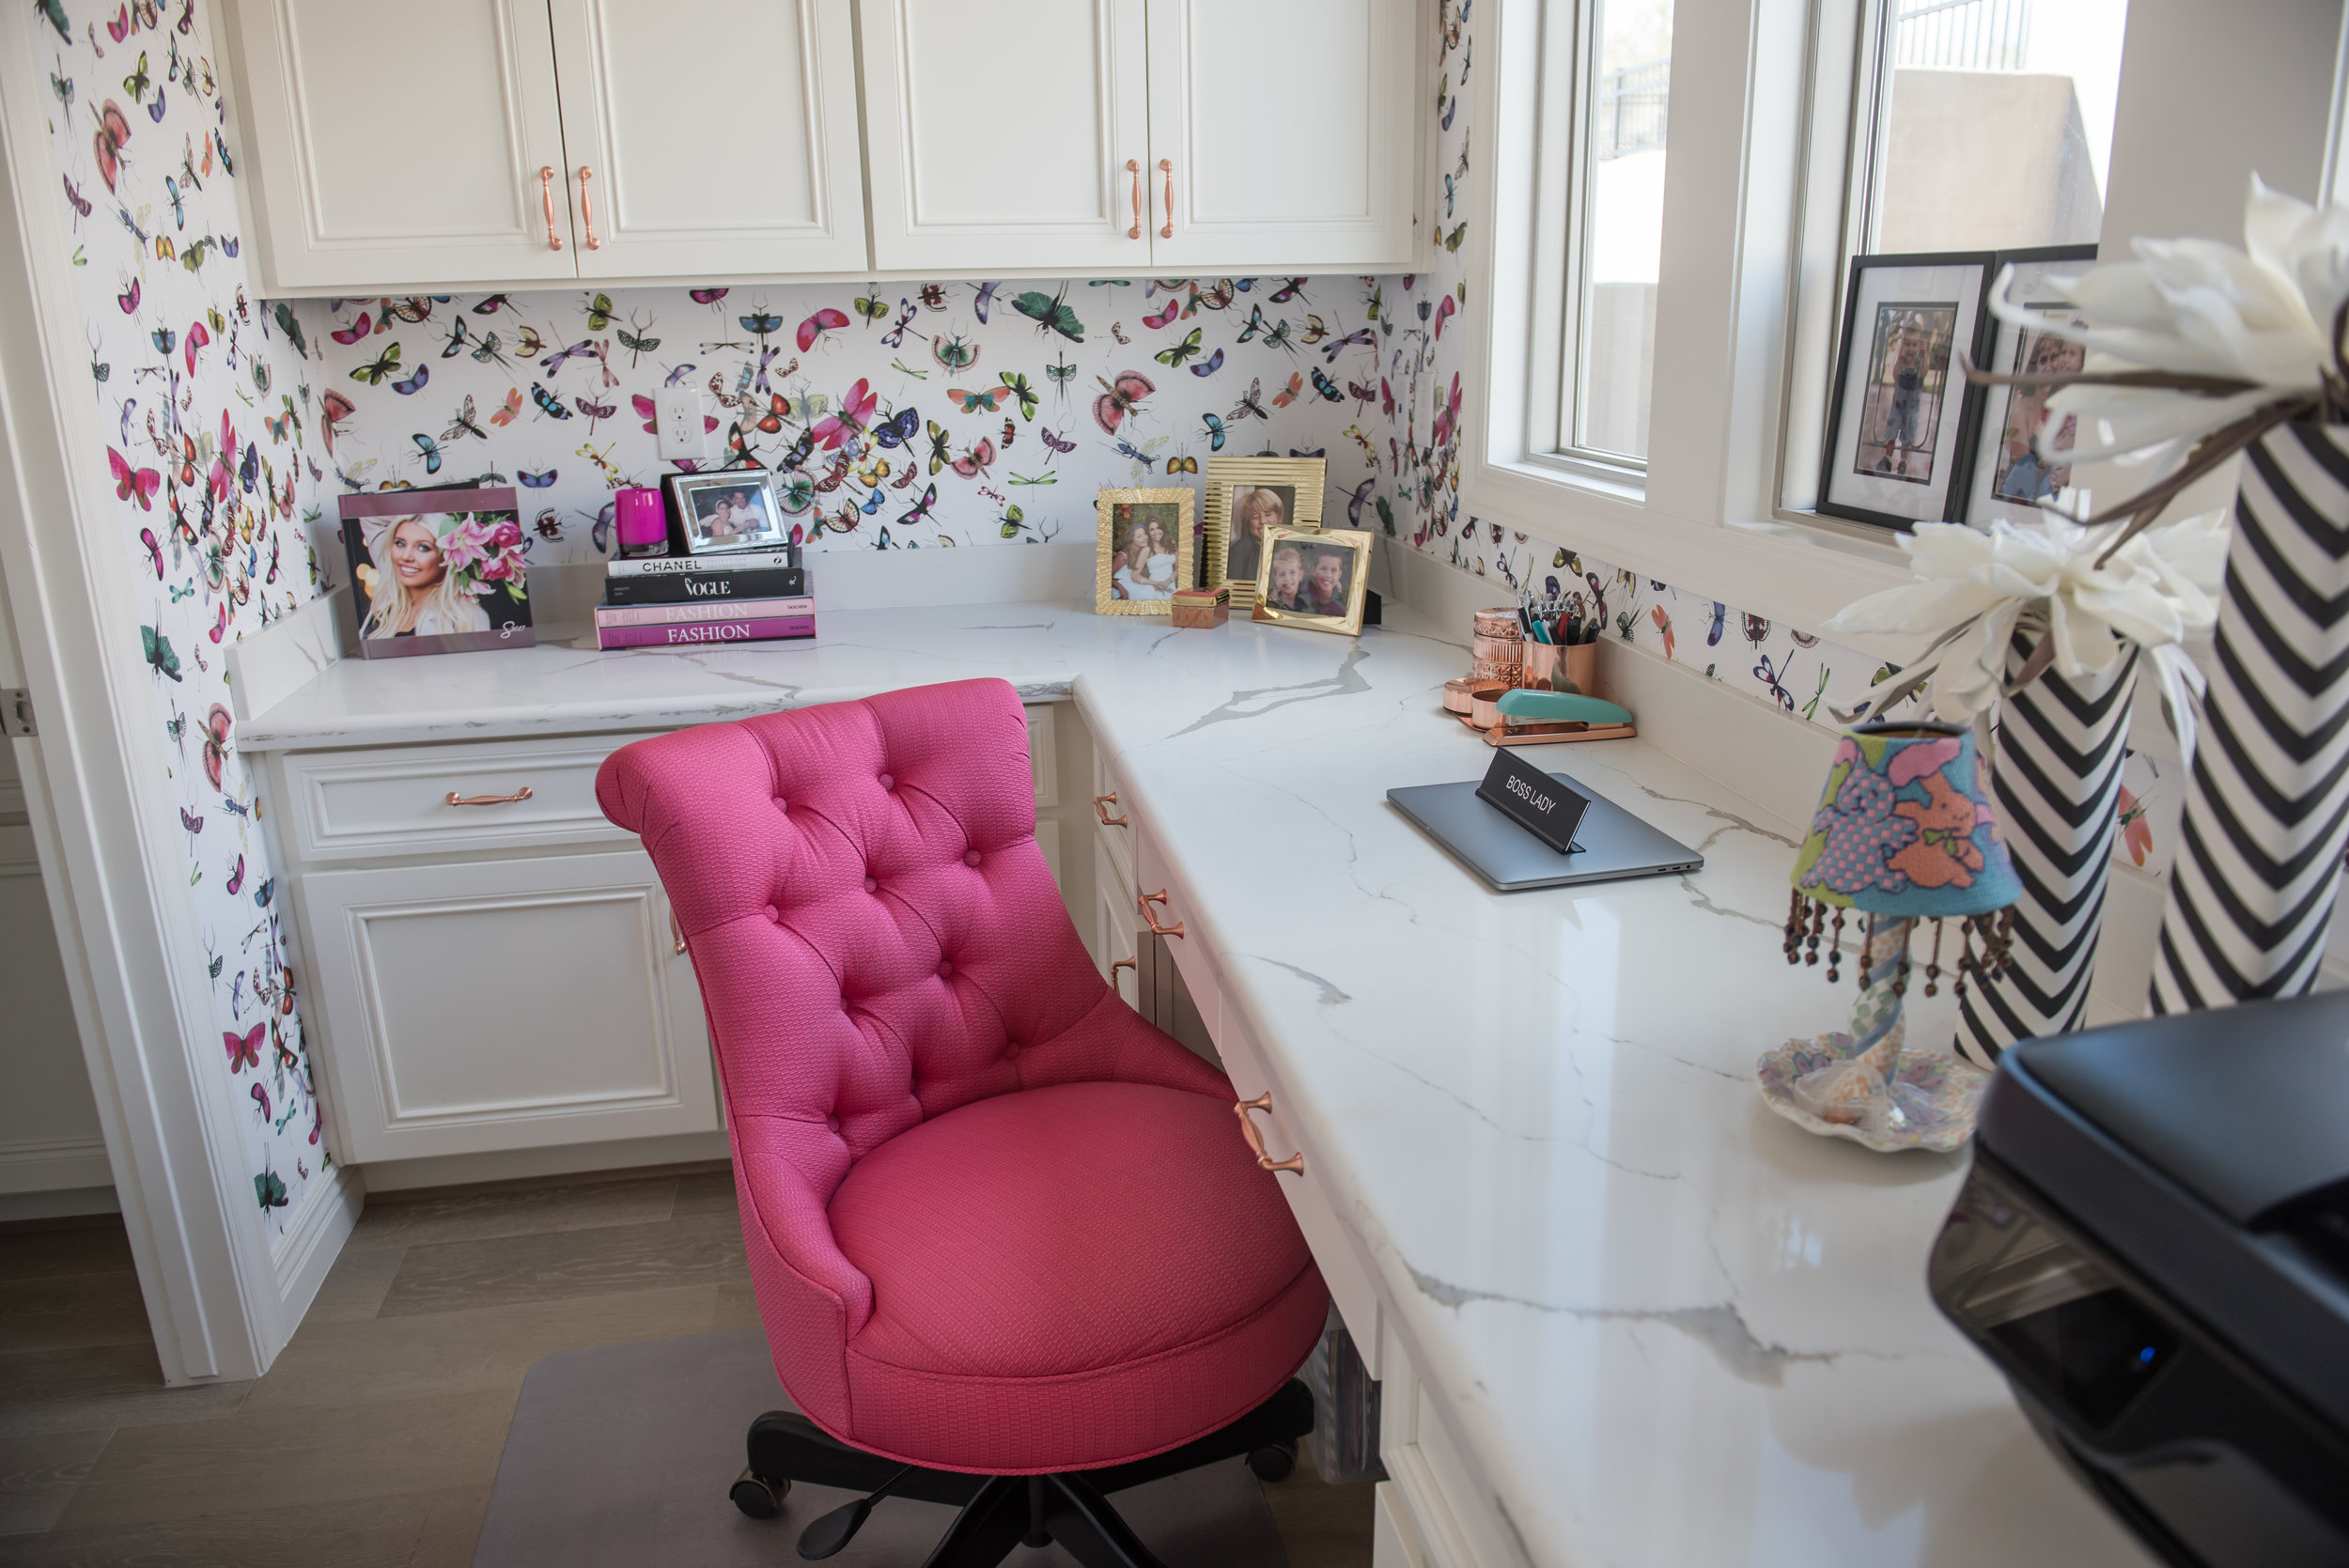 18 Office+Feminine+Hotpink+Wallpaper+Scottsdale.jpg